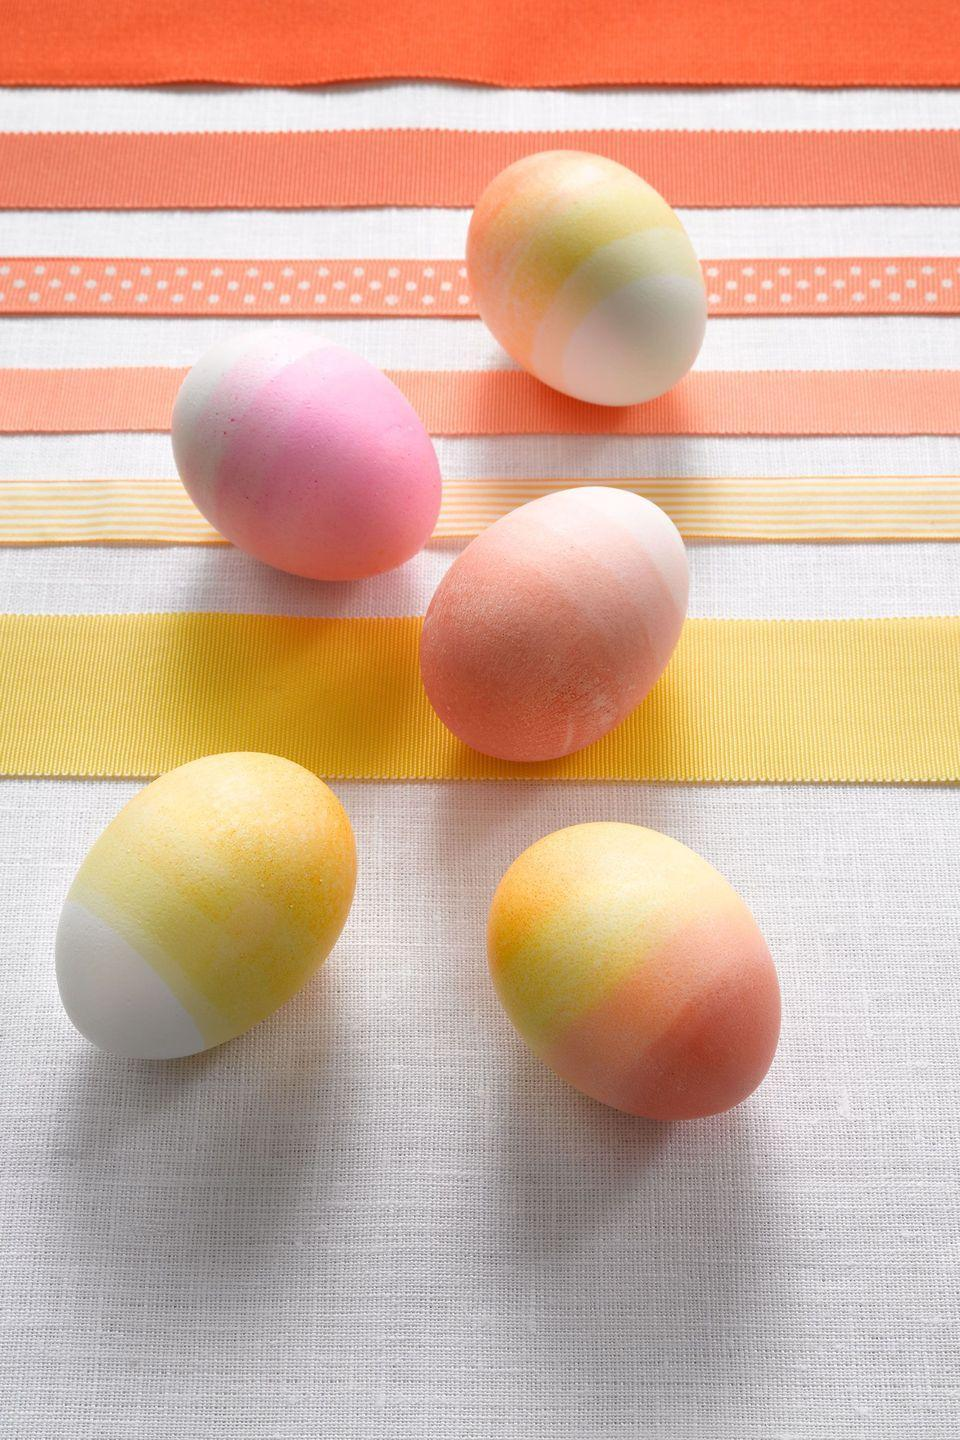 """<p><strong>Materials:</strong></p><p>•Gel/paste food coloring (approximately $2 each at craft and baking supply stores)</p><p>•White vinegar</p><p>•1 dozen white hard-boiled eggs</p><p><strong>Directions:</strong></p><p><strong>1.</strong> Mix colors using ⅓ tsp (¼ tsp for yellow) food coloring, enough warm water to cover eggs and 1 tsp white vinegar.</p><p><strong>2.</strong> Dip egg fully in dye and let dry.</p><p><strong>3. </strong>Dip the egg again ¾ of the way into the dye and let dry. Repeat in quarterly increments.</p><p><strong>Optional:</strong> You can also start by leaving the tip of the egg white. To create a multicolor gradation, start with one color and dip in quarterly increments. At the half mark, begin dipping by quarters in another color.</p><p><strong><a class=""""link rapid-noclick-resp"""" href=""""https://www.amazon.com/Chefmaster-Liqua-Gel-Natural-Coloring-Decorating/dp/B07KGHVFKM/?tag=syn-yahoo-20&ascsubtag=%5Bartid%7C10070.g.1751%5Bsrc%7Cyahoo-us"""" rel=""""nofollow noopener"""" target=""""_blank"""" data-ylk=""""slk:SHOP EASTER EGG DYE"""">SHOP EASTER EGG DYE</a></strong></p>"""